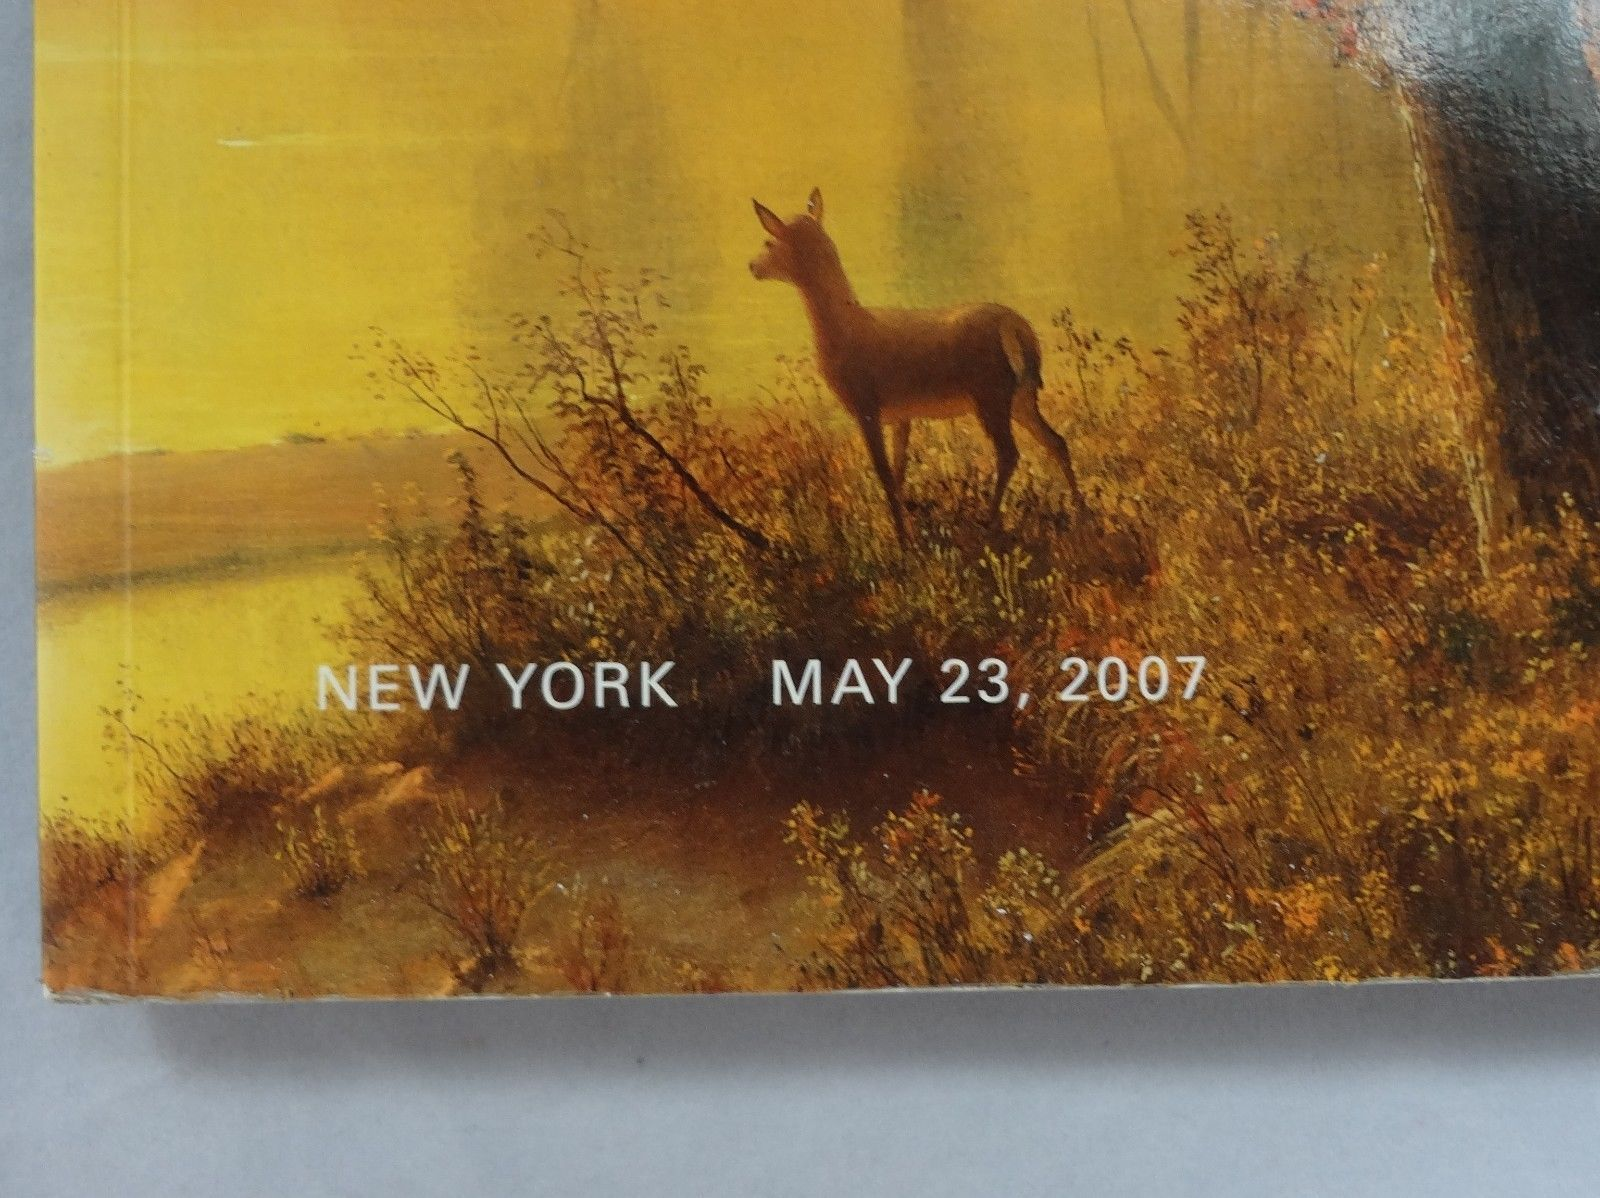 Sotheby's NY American Paintings, Drawings & Sculpture Catalog May 23, 2007